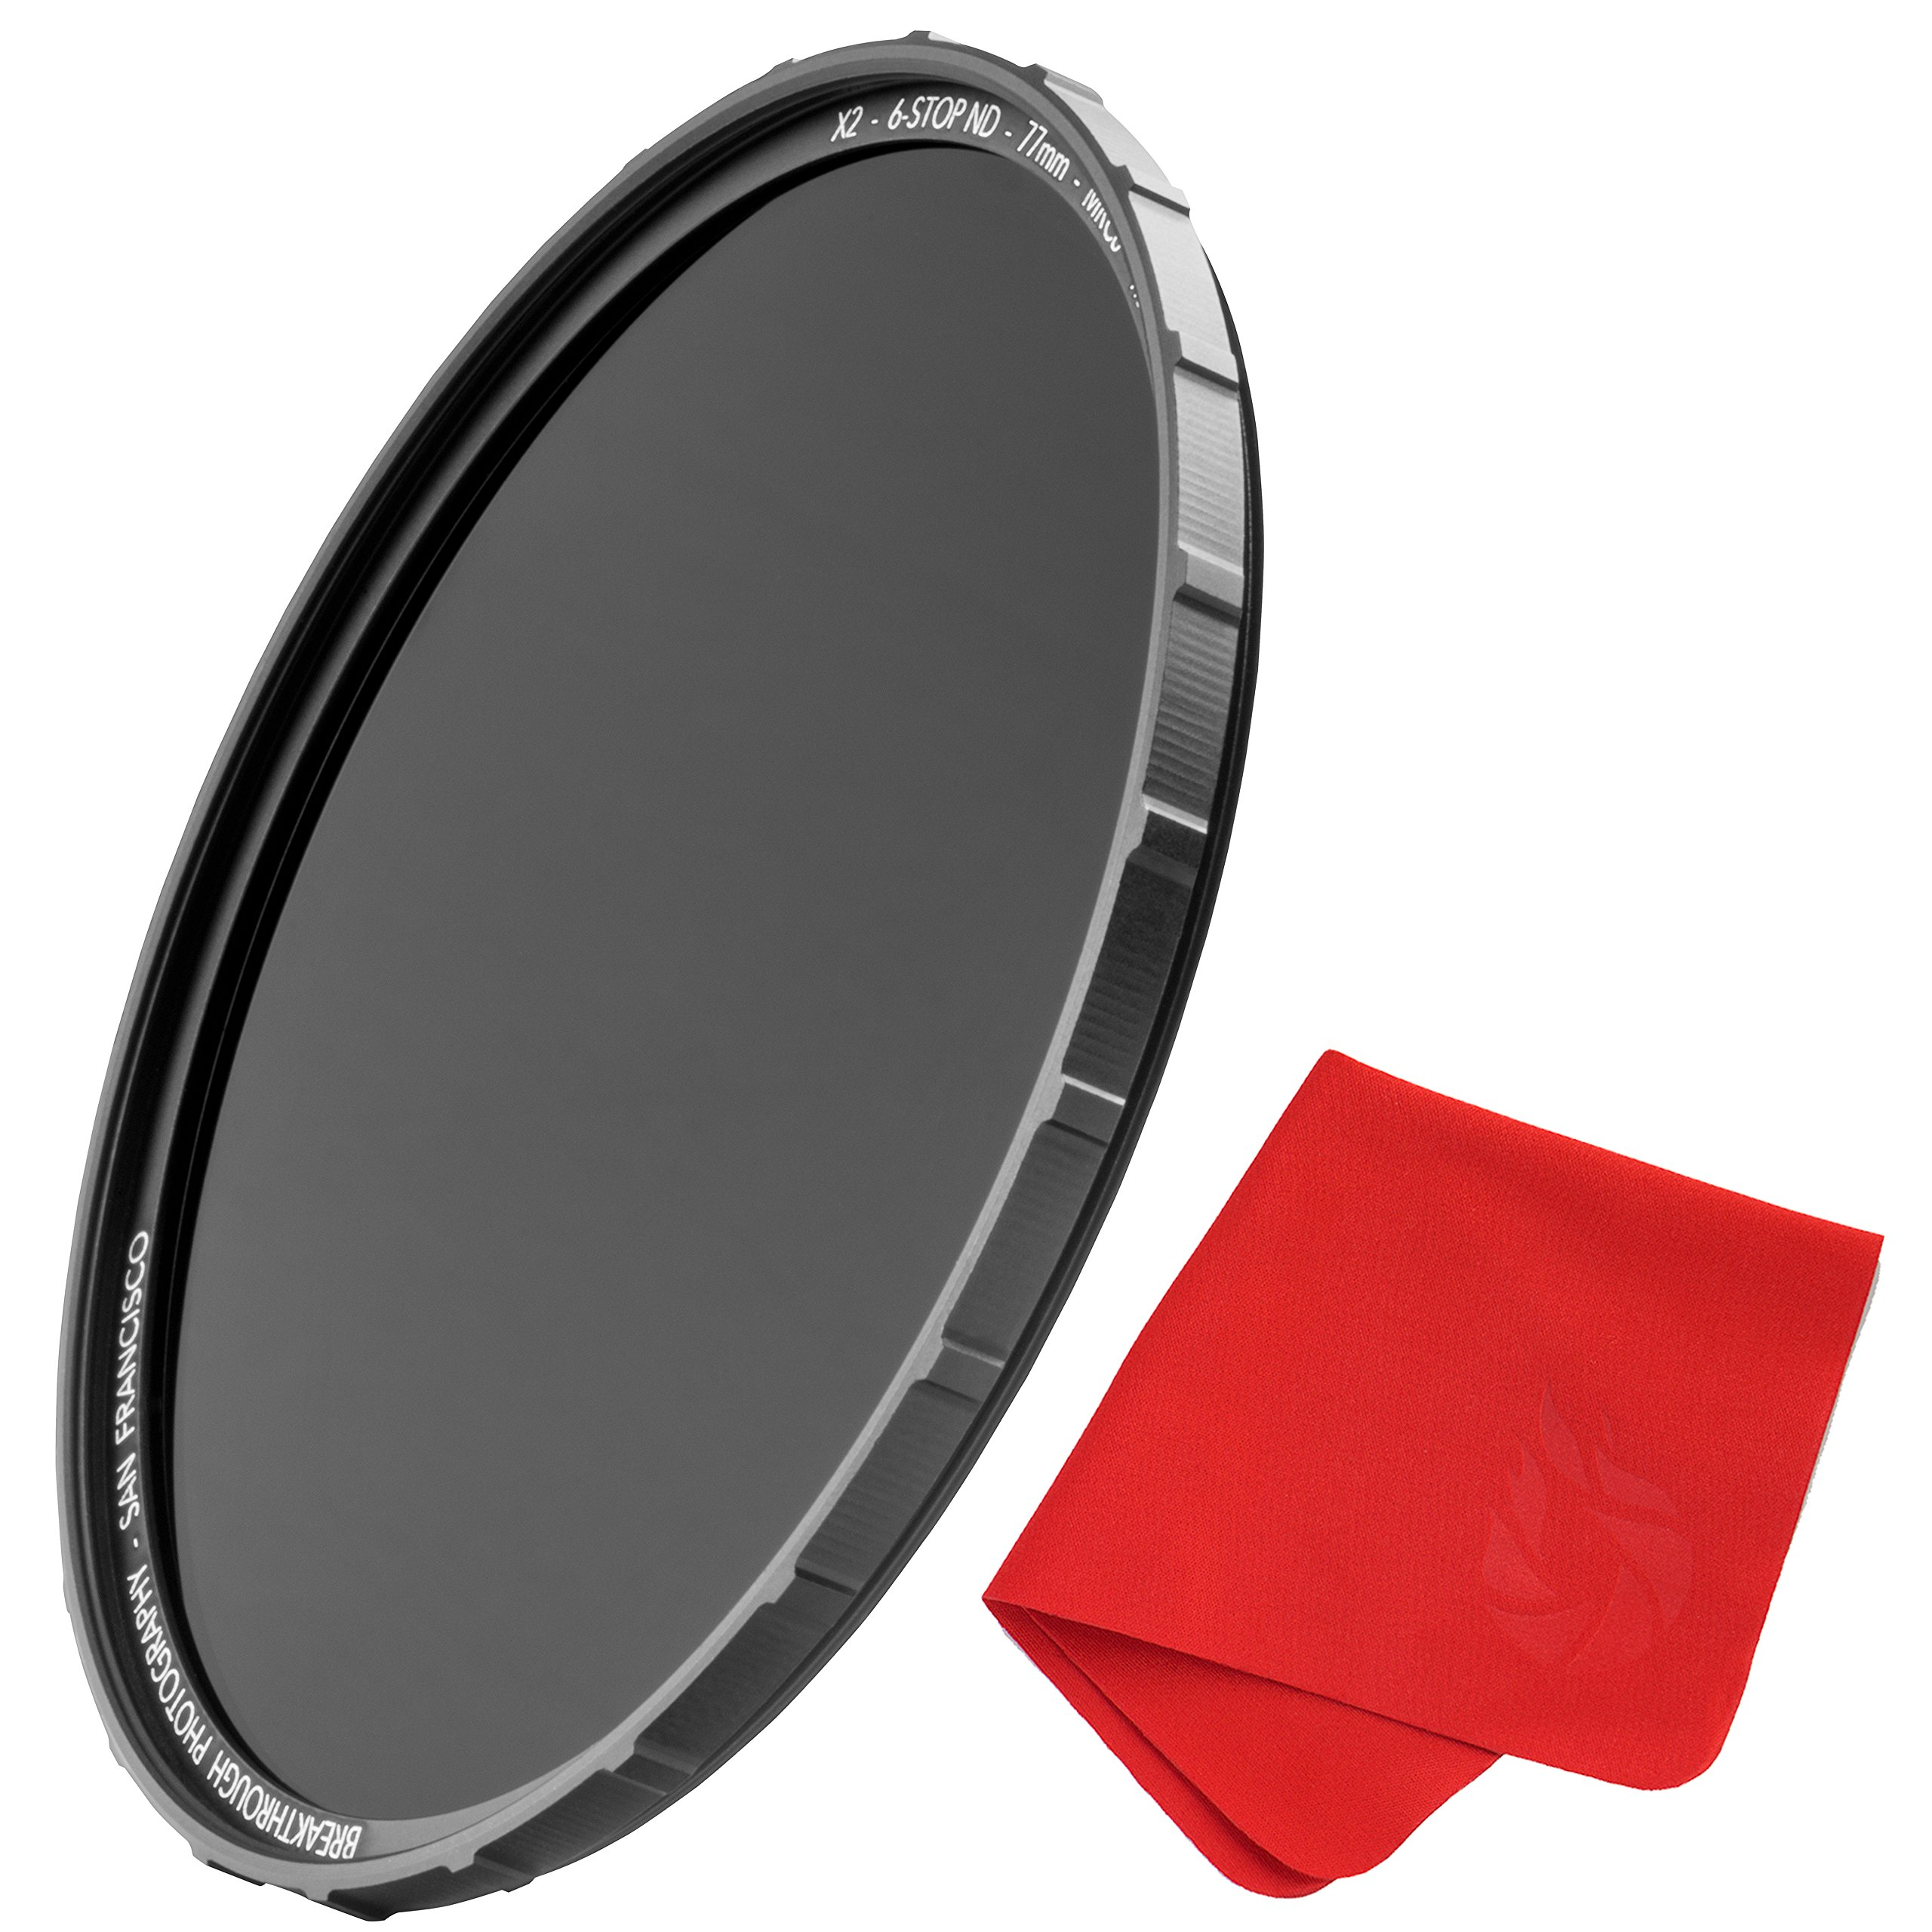 77mm X2 6-Stop ND Filter for Camera Lenses - Neutral Density Professional Photography Filter with Lens Cloth - MRC8, Nanotec, Ultra-Slim, Weather-Sealed by Breakthrough Photography by Breakthrough Photography